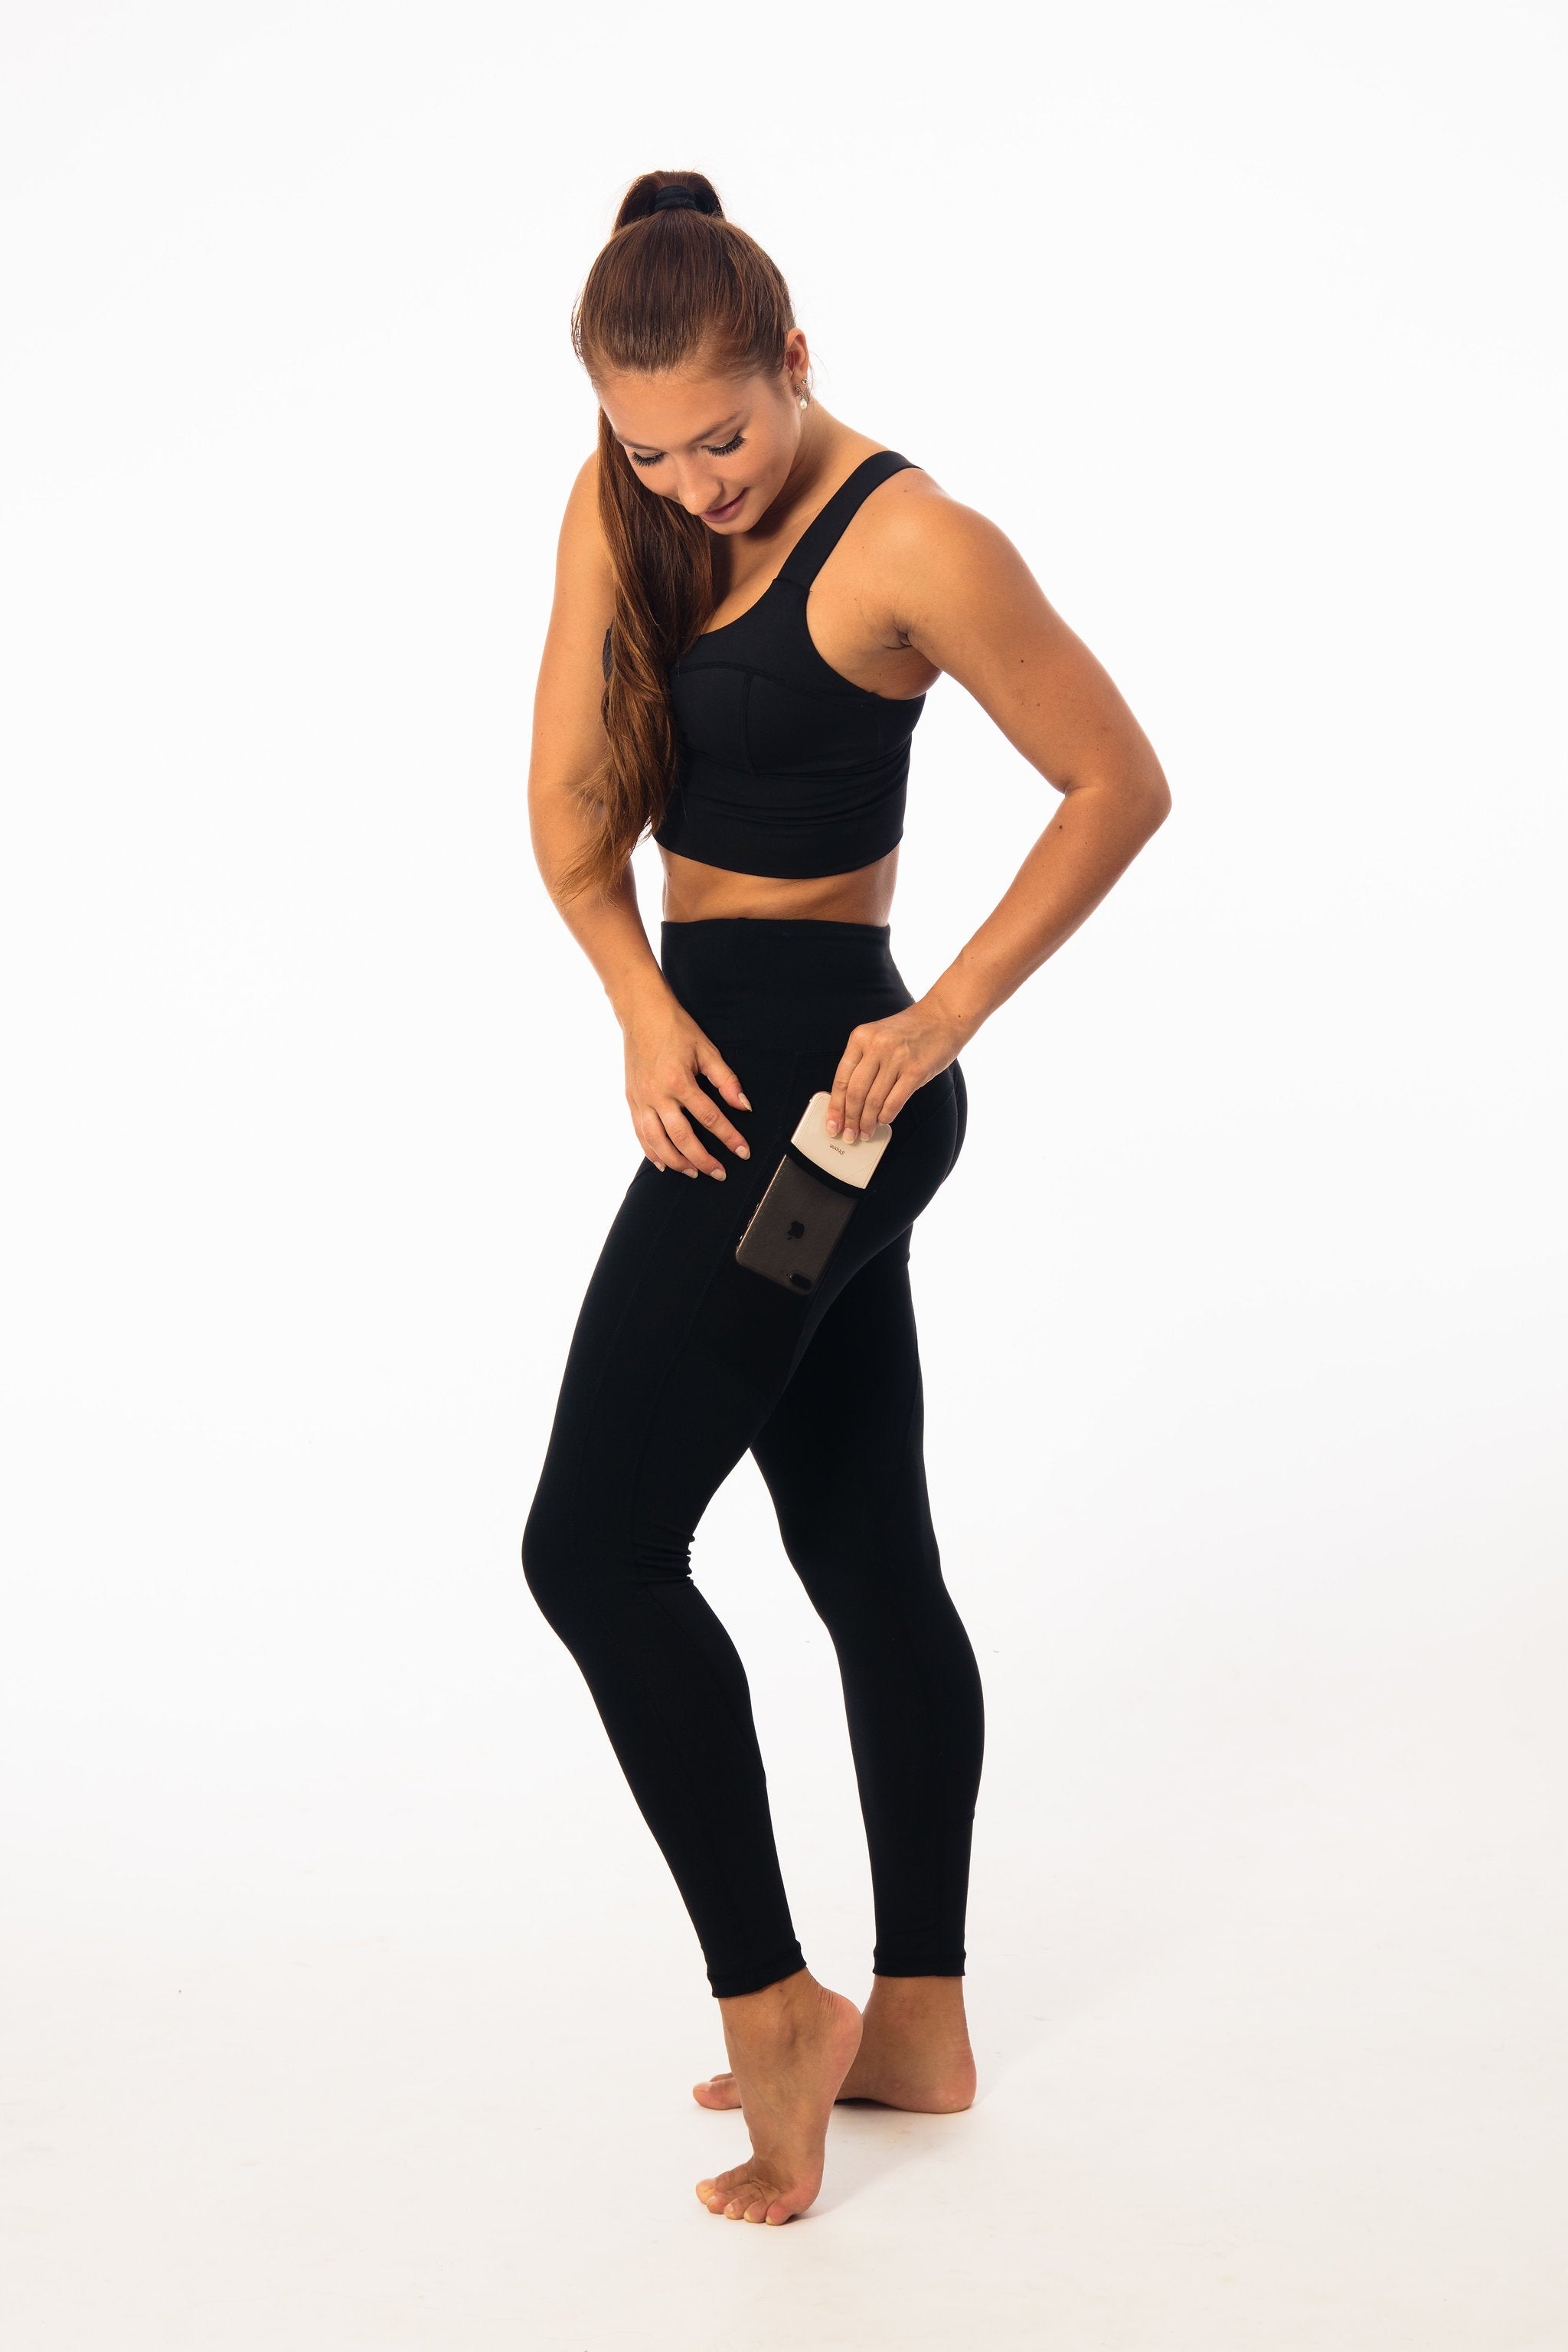 brunette wearing black leggings with a pocket and small tight tank top